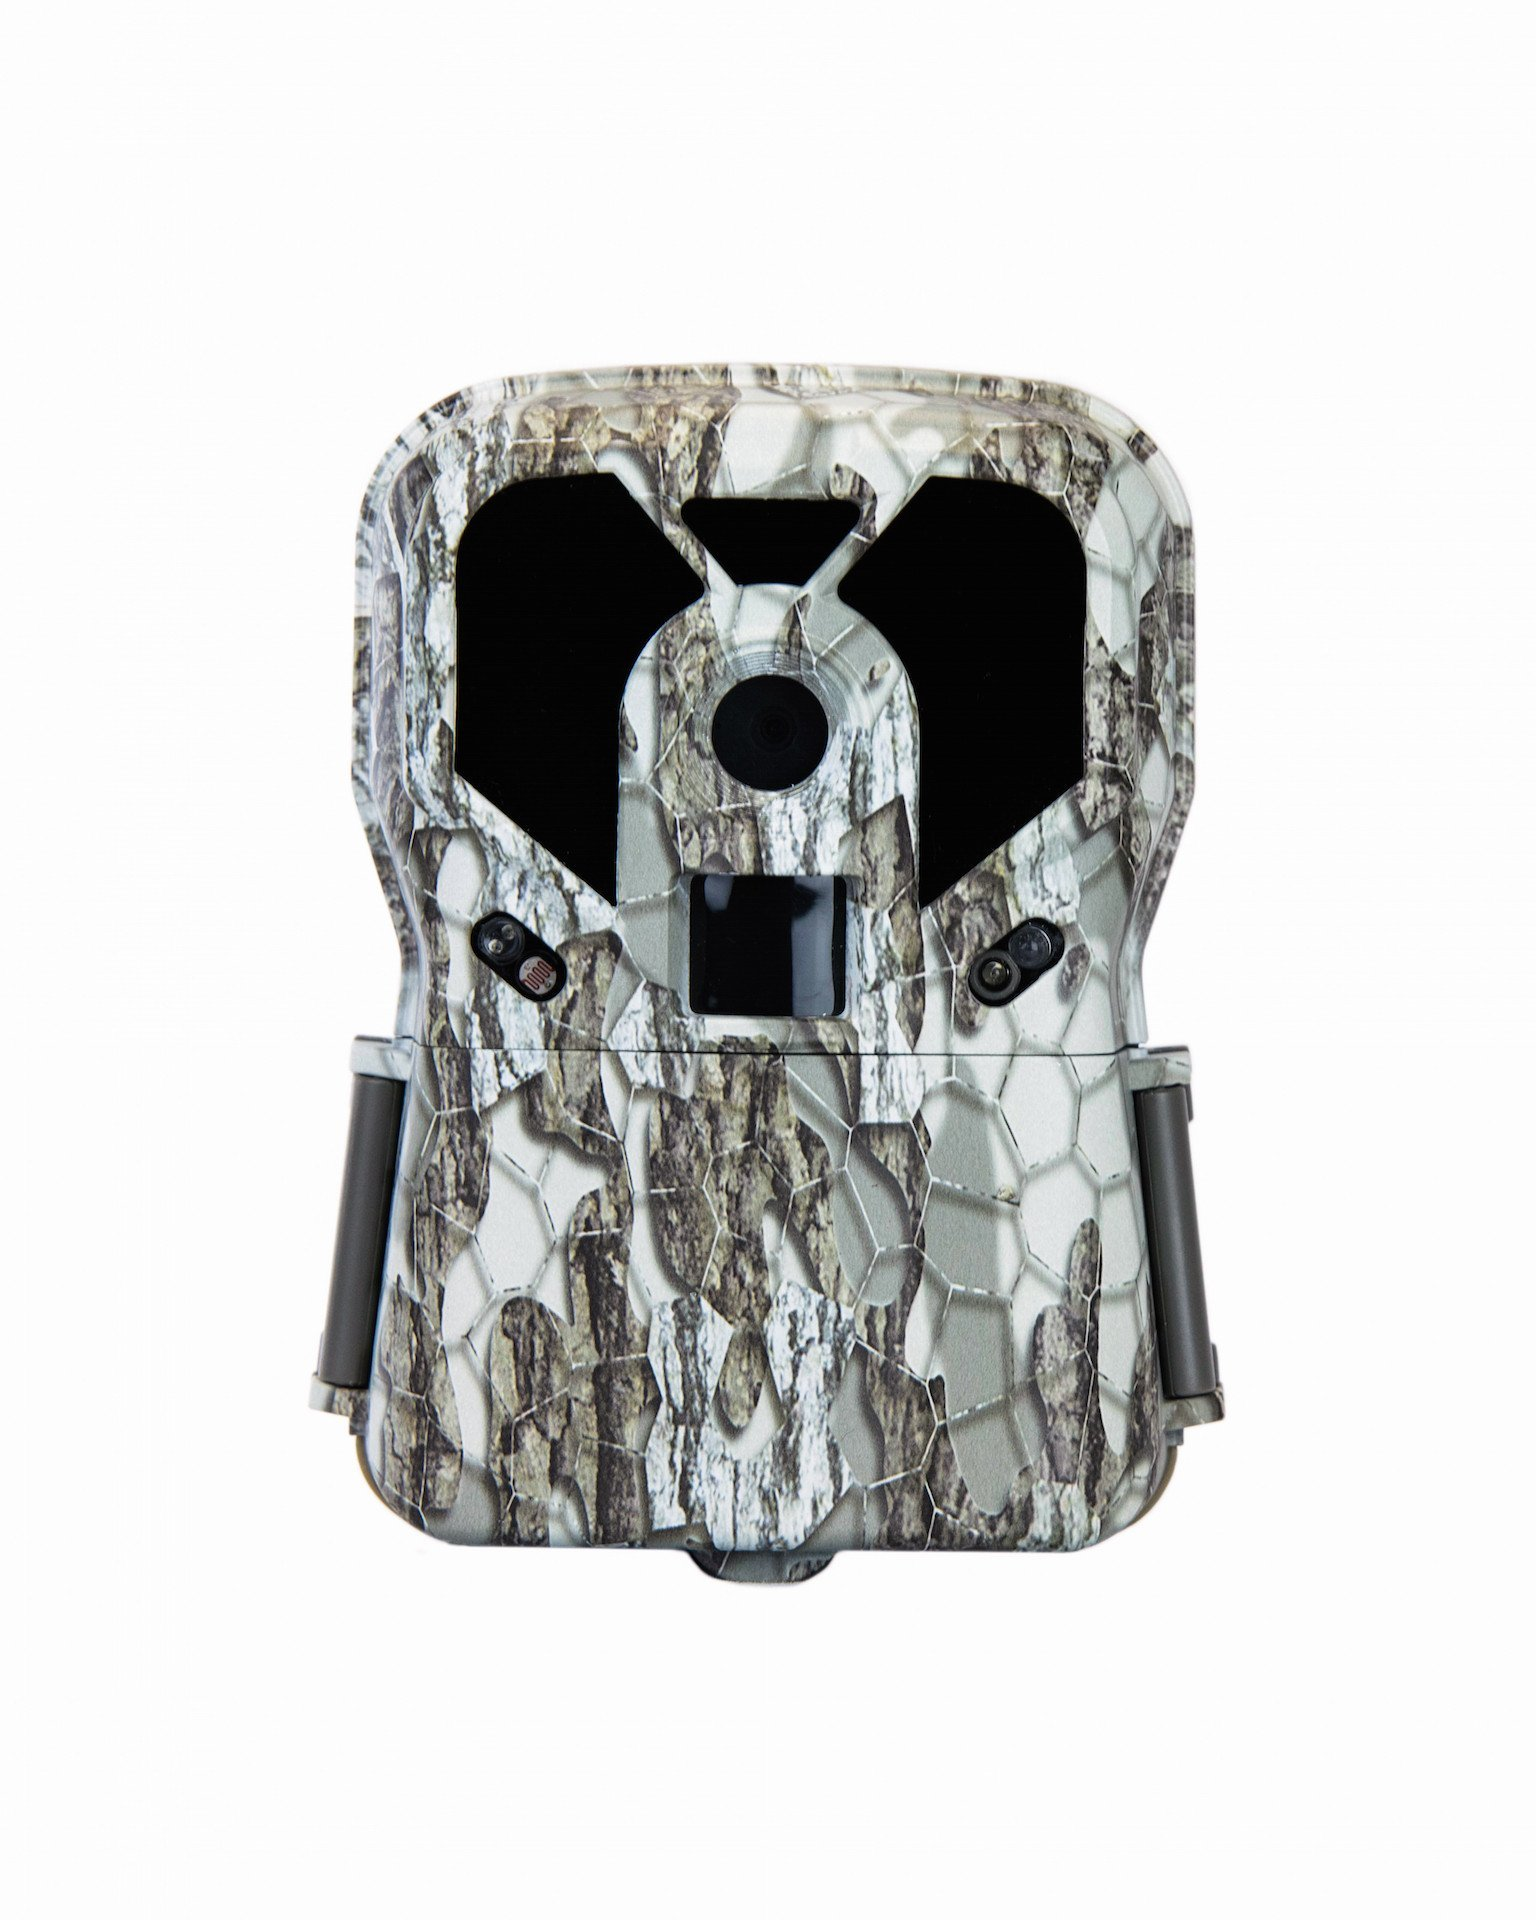 Exodus Lift II Trail Camera | .4 Second Trigger Speed, Black Flash Game Camera, Ultra HD Photos and Videos | Life's A Passion, Pursue It by Exodus Outdoor Gear (Image #1)